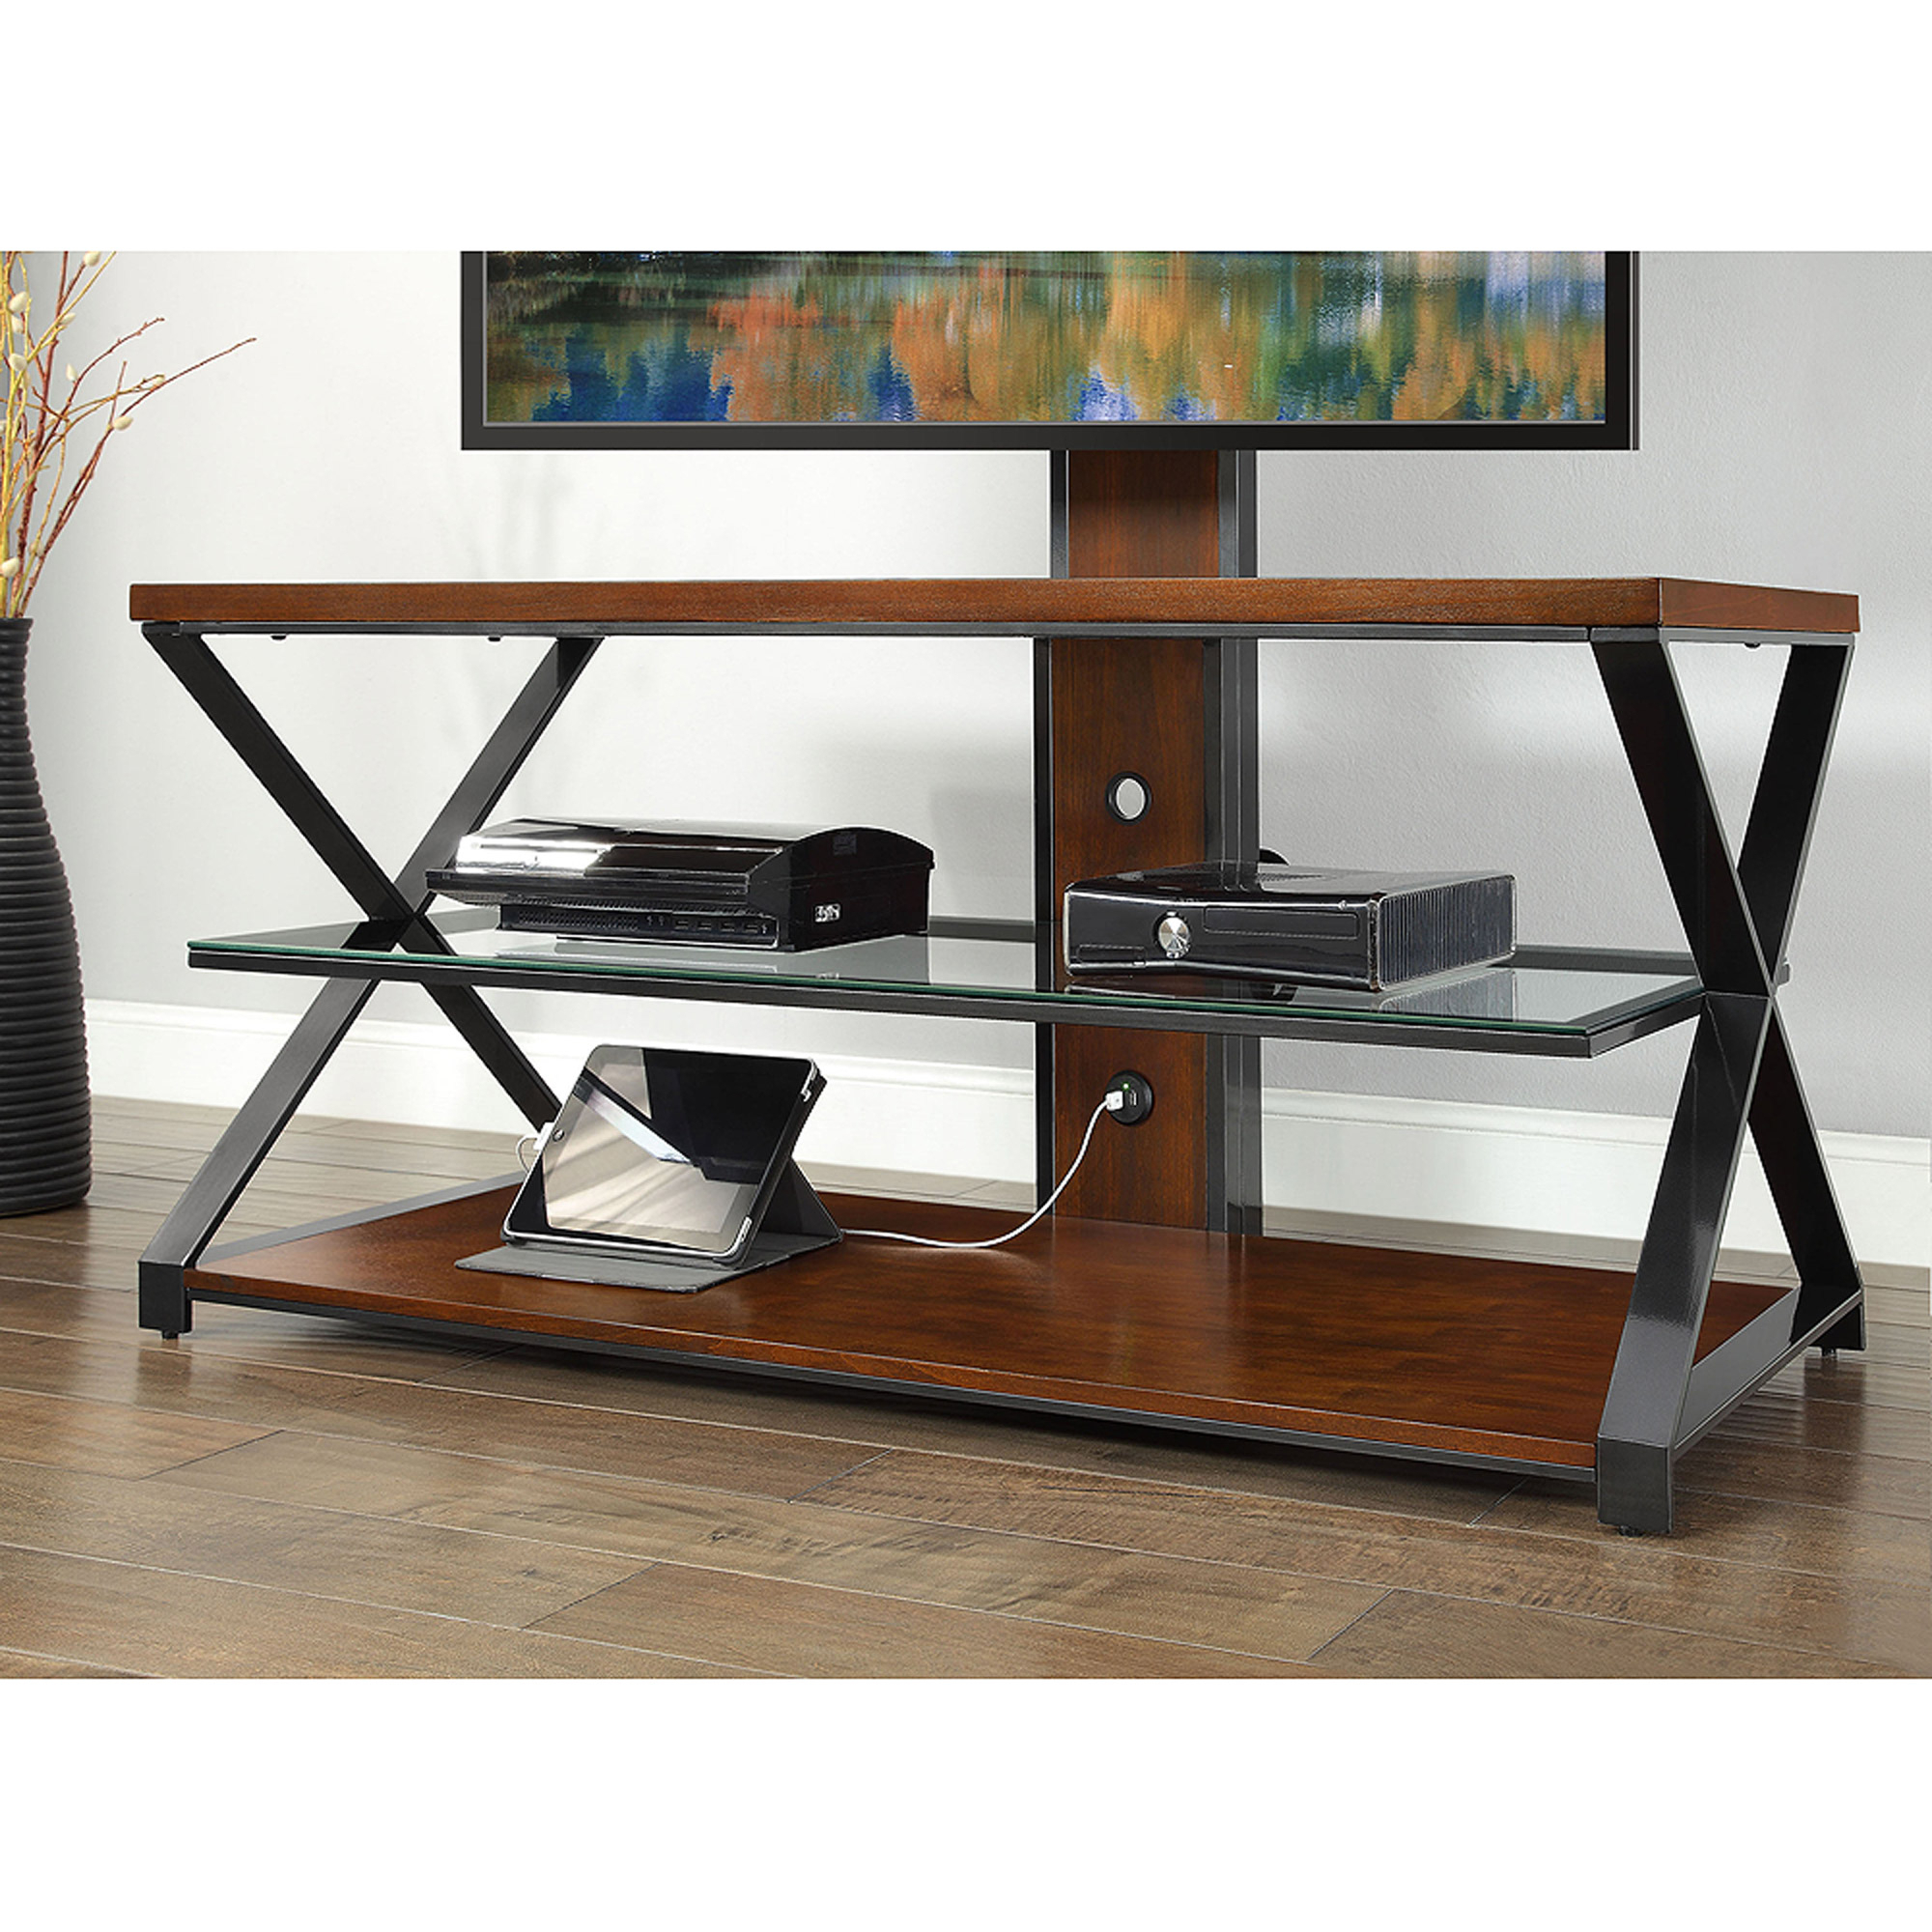 Sarah Tv Stands: Jaxon 3 In 1 Cognac Tv Stand For Tvs Up To 70'' Pertaining To Jaxon 65 Inch Tv Stands (View 15 of 20)